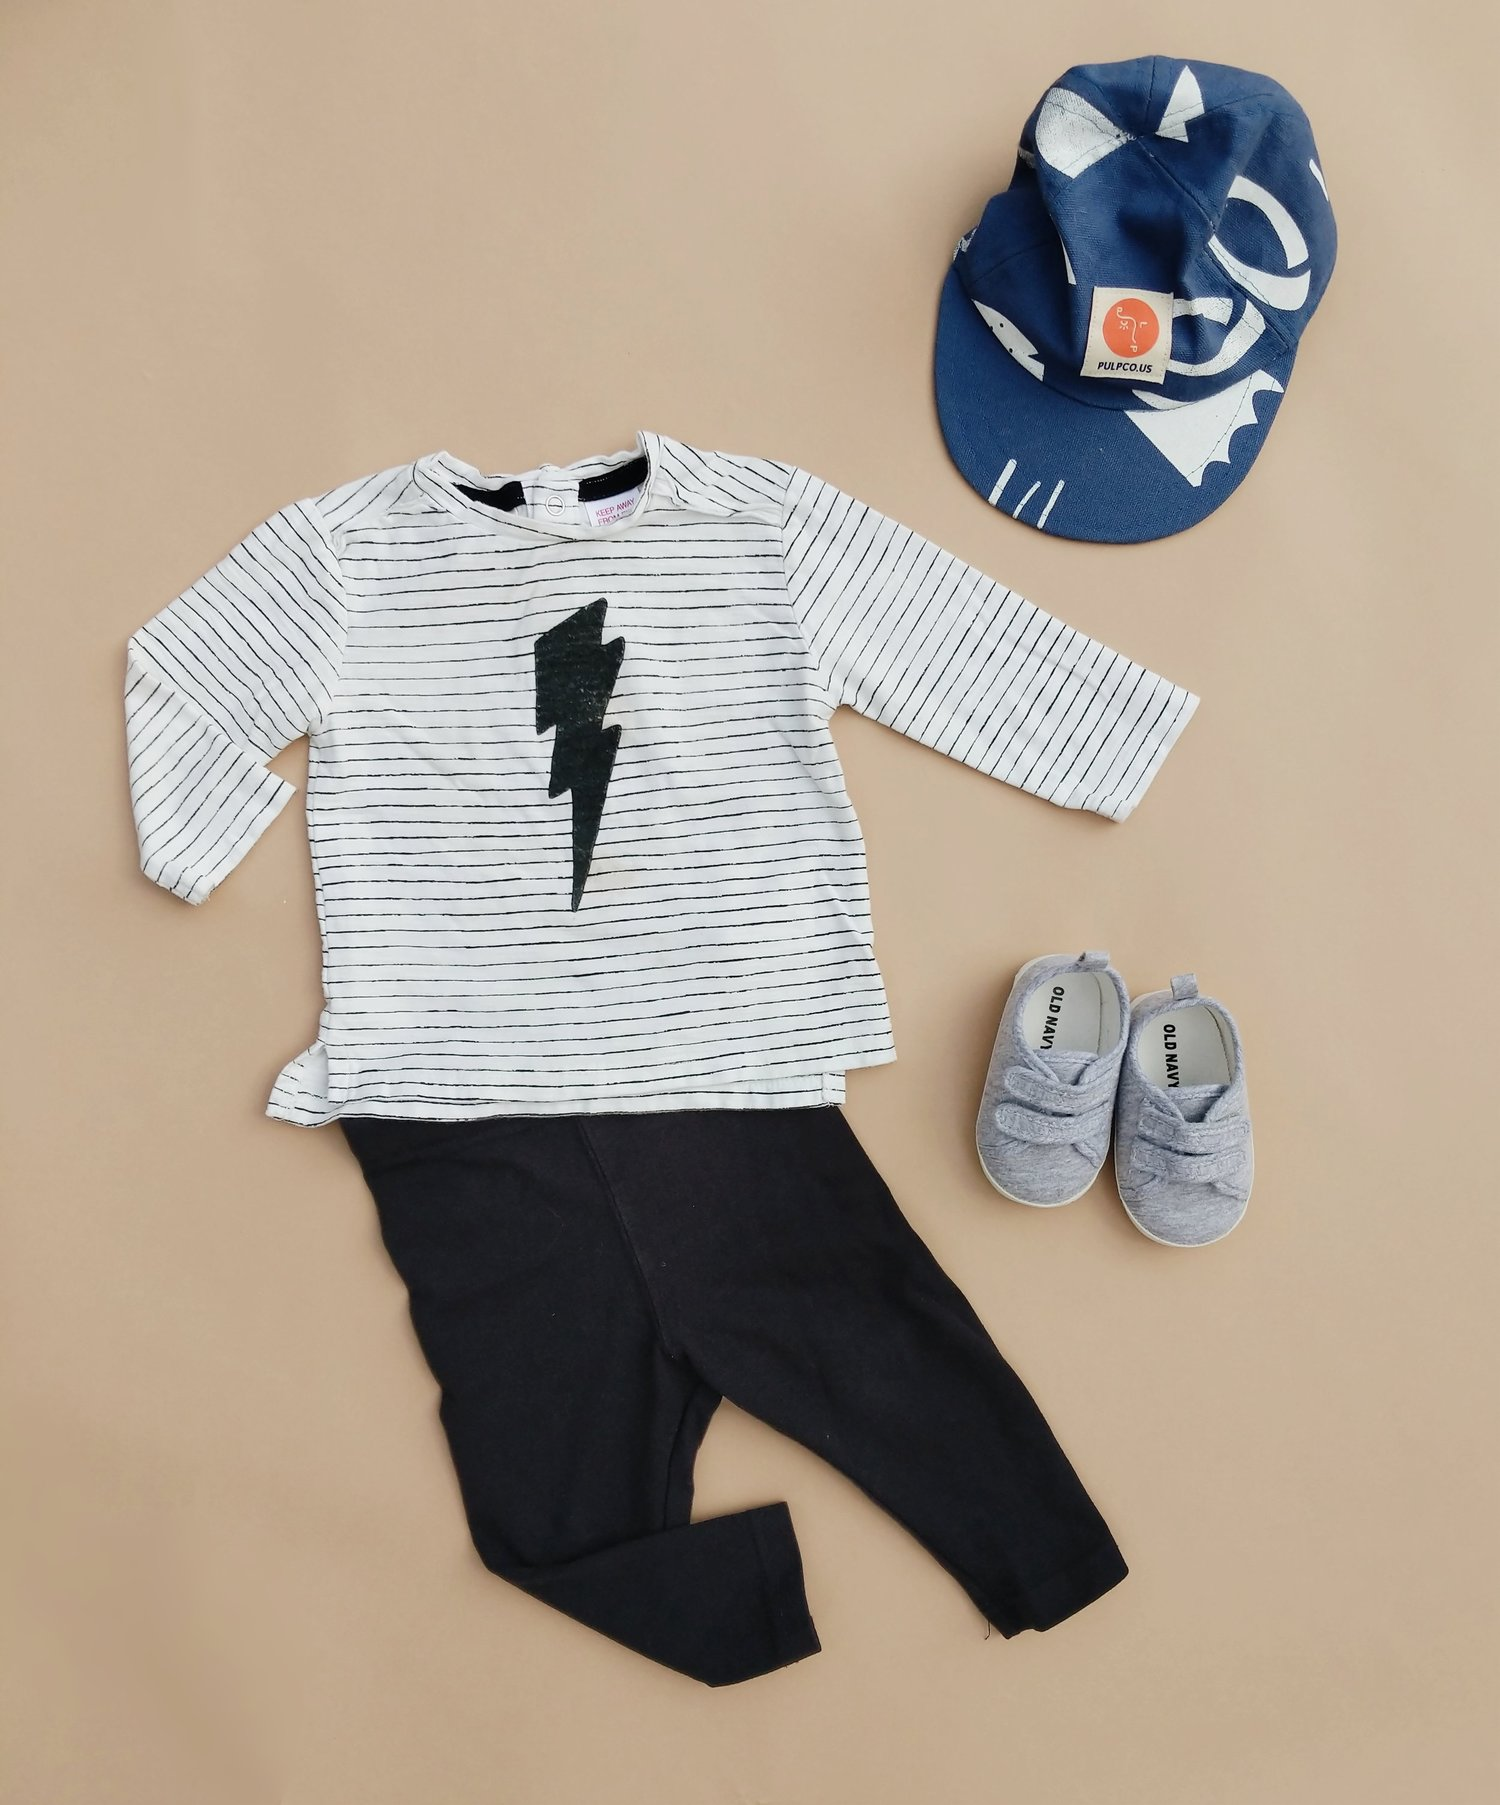 c98de2c1 Hip-Baby-Boy-Clothes-06.jpg. Shirt from ZARA / Hat from PULP CO. / Pants  from H&M / Shoes ...